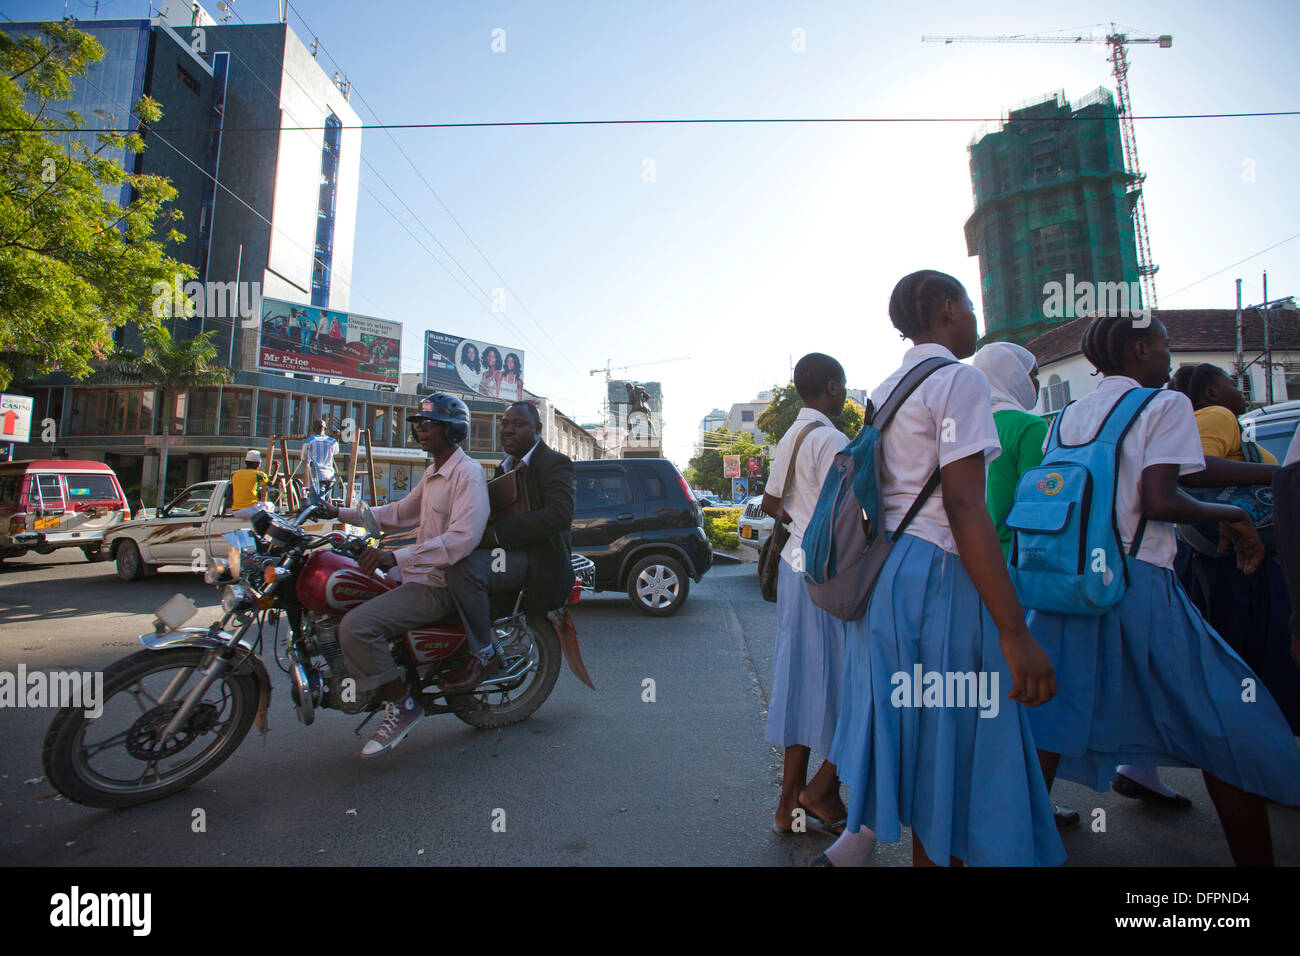 Downtown Dar es Salaam with Askari monument in middle, Tanzania. - Stock Image